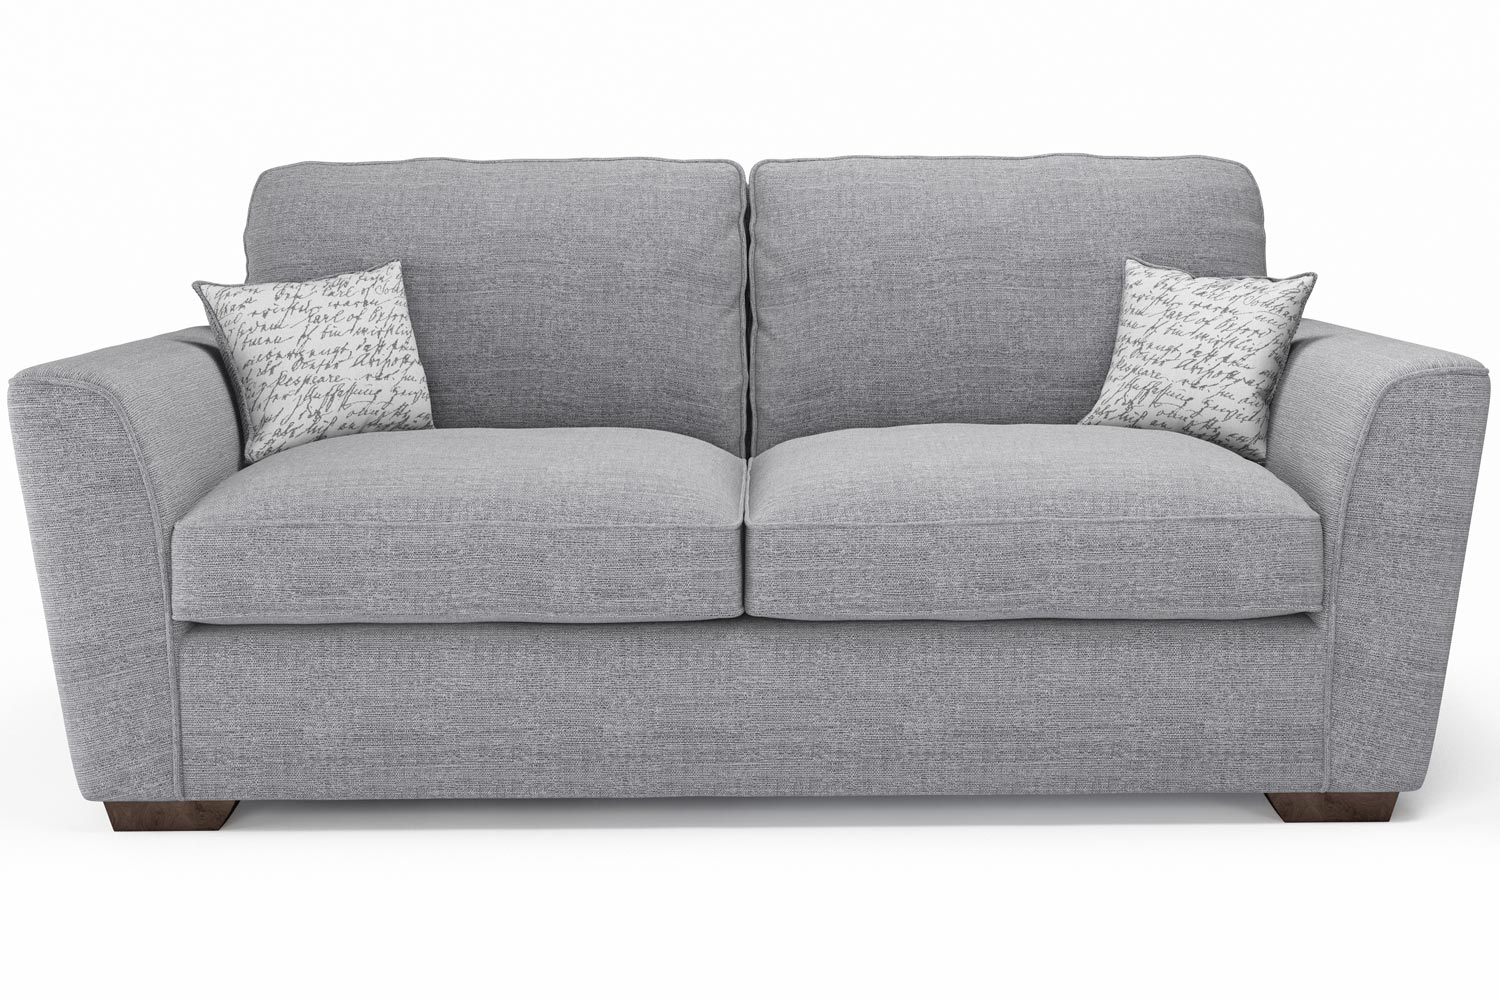 Fantasia 3 Seater Sofa. 5 out of 5 stars. Read reviews.